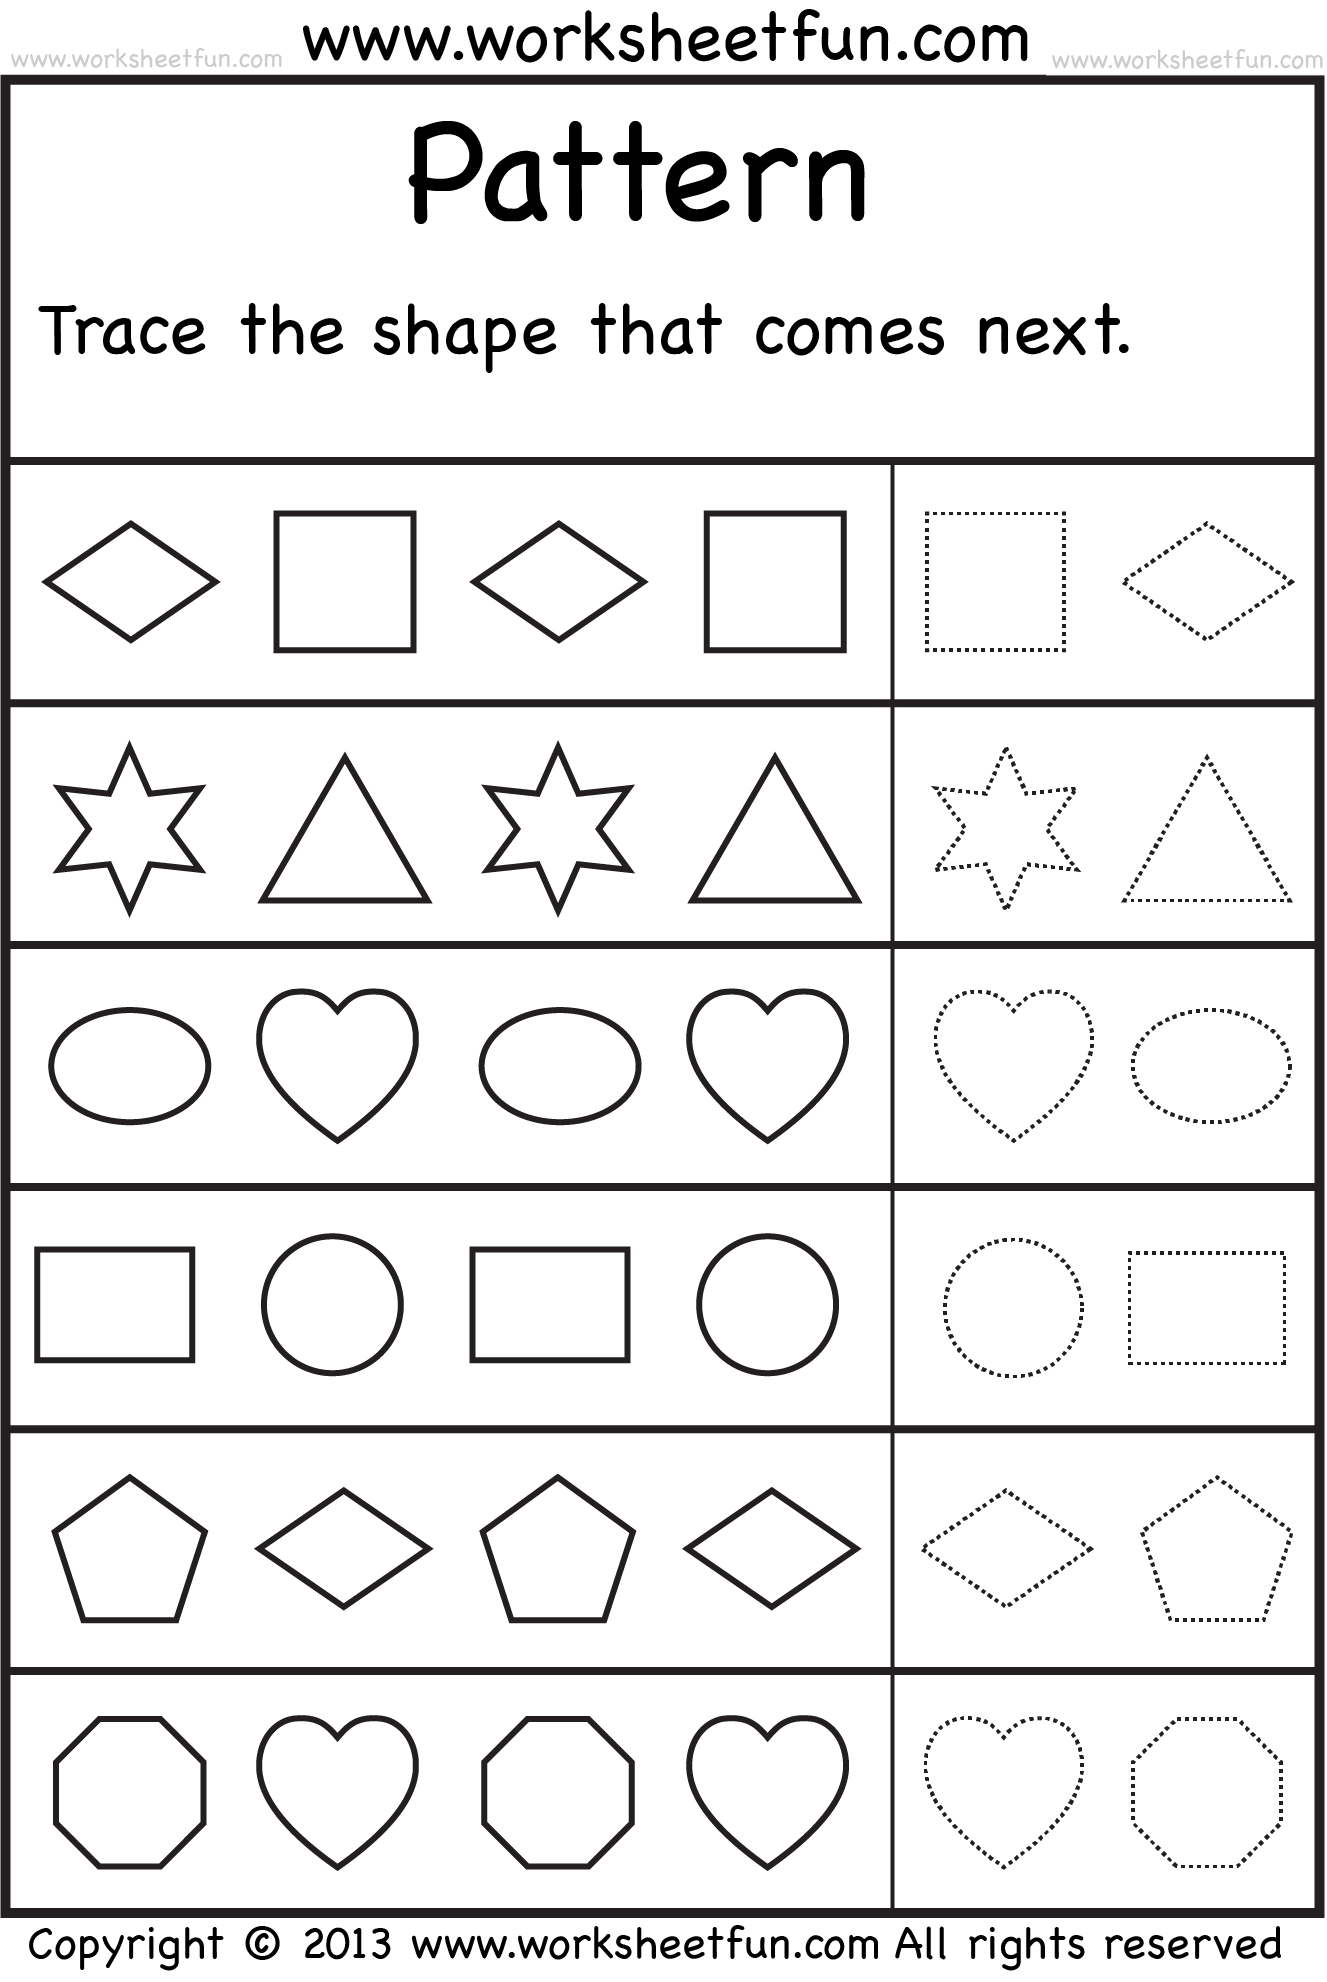 Worksheet Preschool Patterns Worksheets 8 best images of patterns free printable preschool worksheets shape pattern worksheets